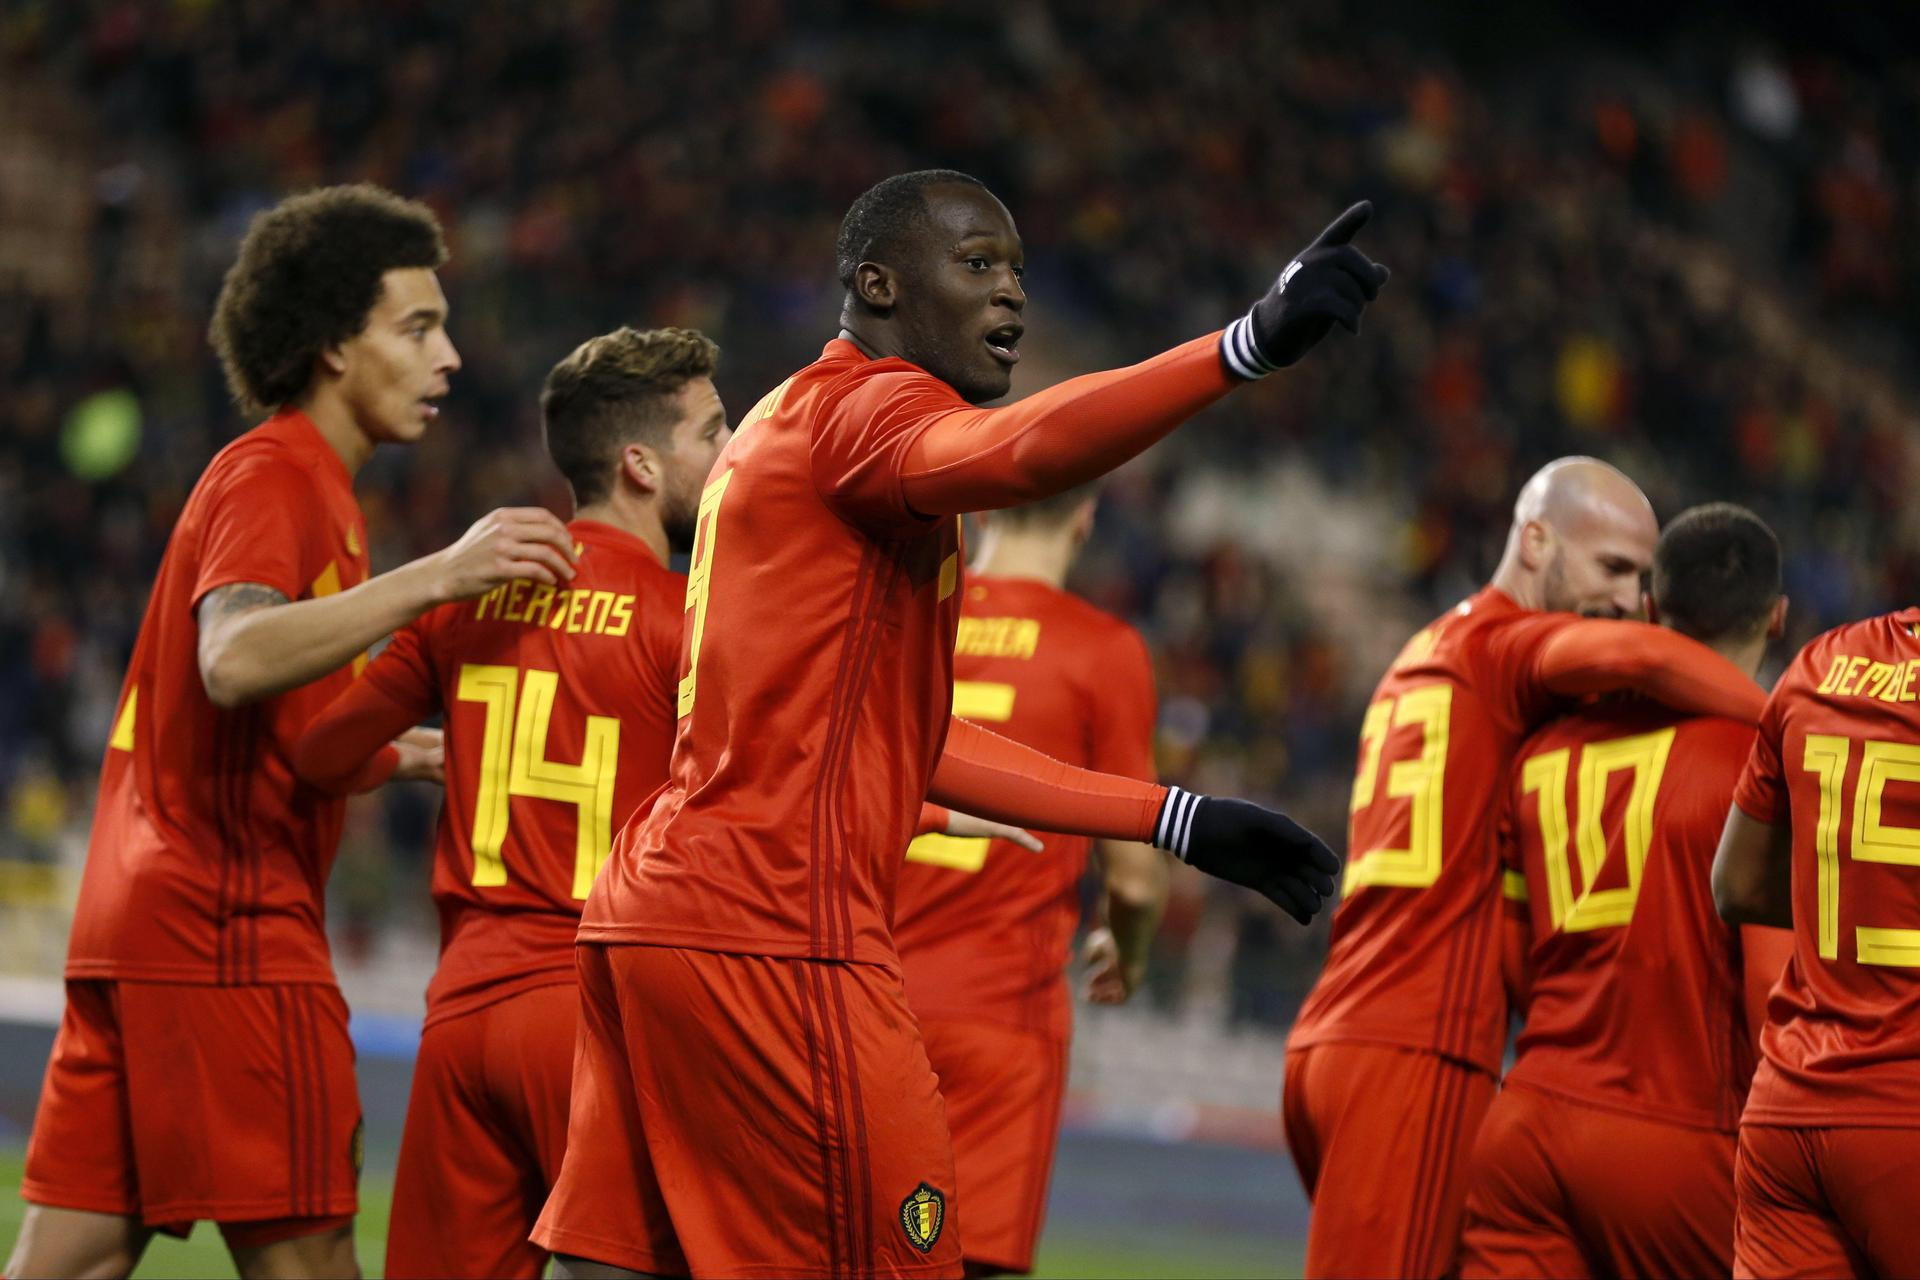 Romelu Lukaku in action for the Belgium national team.